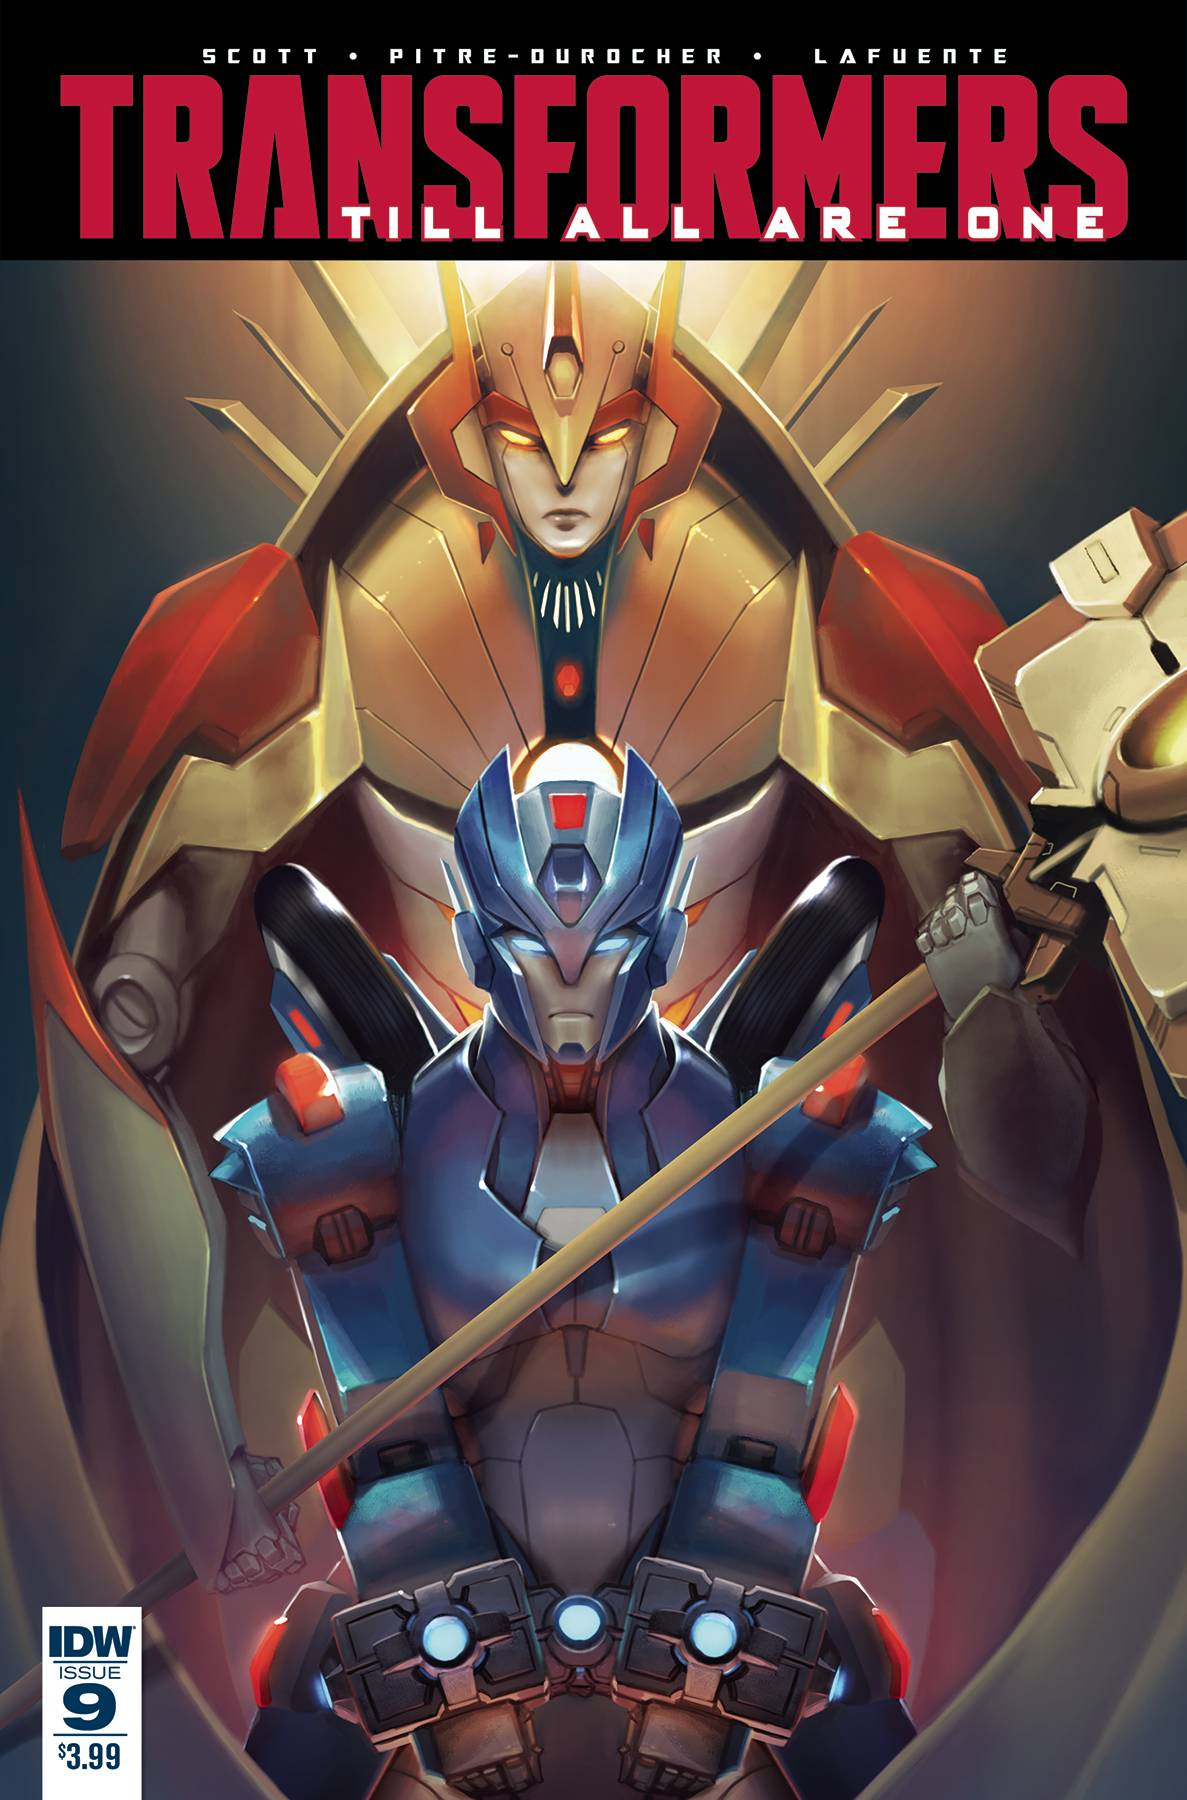 TRANSFORMERS TILL ALL ARE ONE 9.jpg